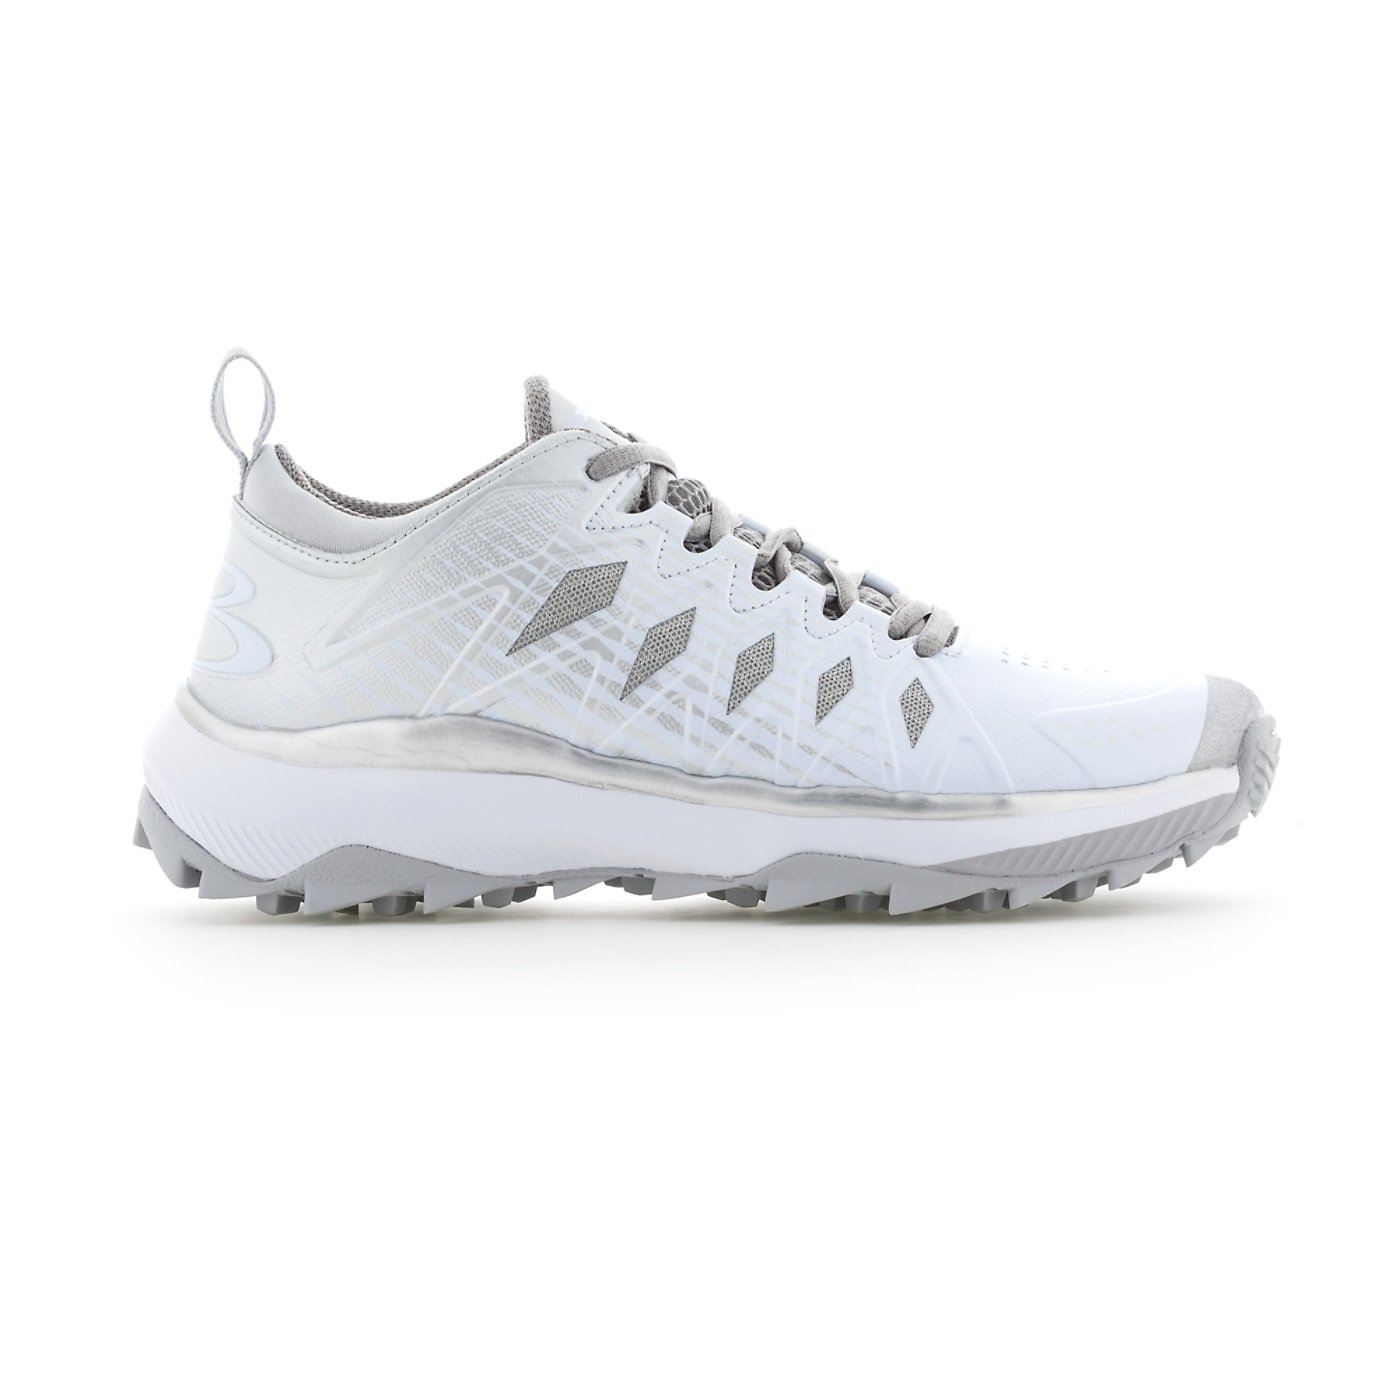 Boombah Women's Squadron Turf Shoes - 14 Color Options - Multiple Sizes B079K5W6D9 8|Silver/White